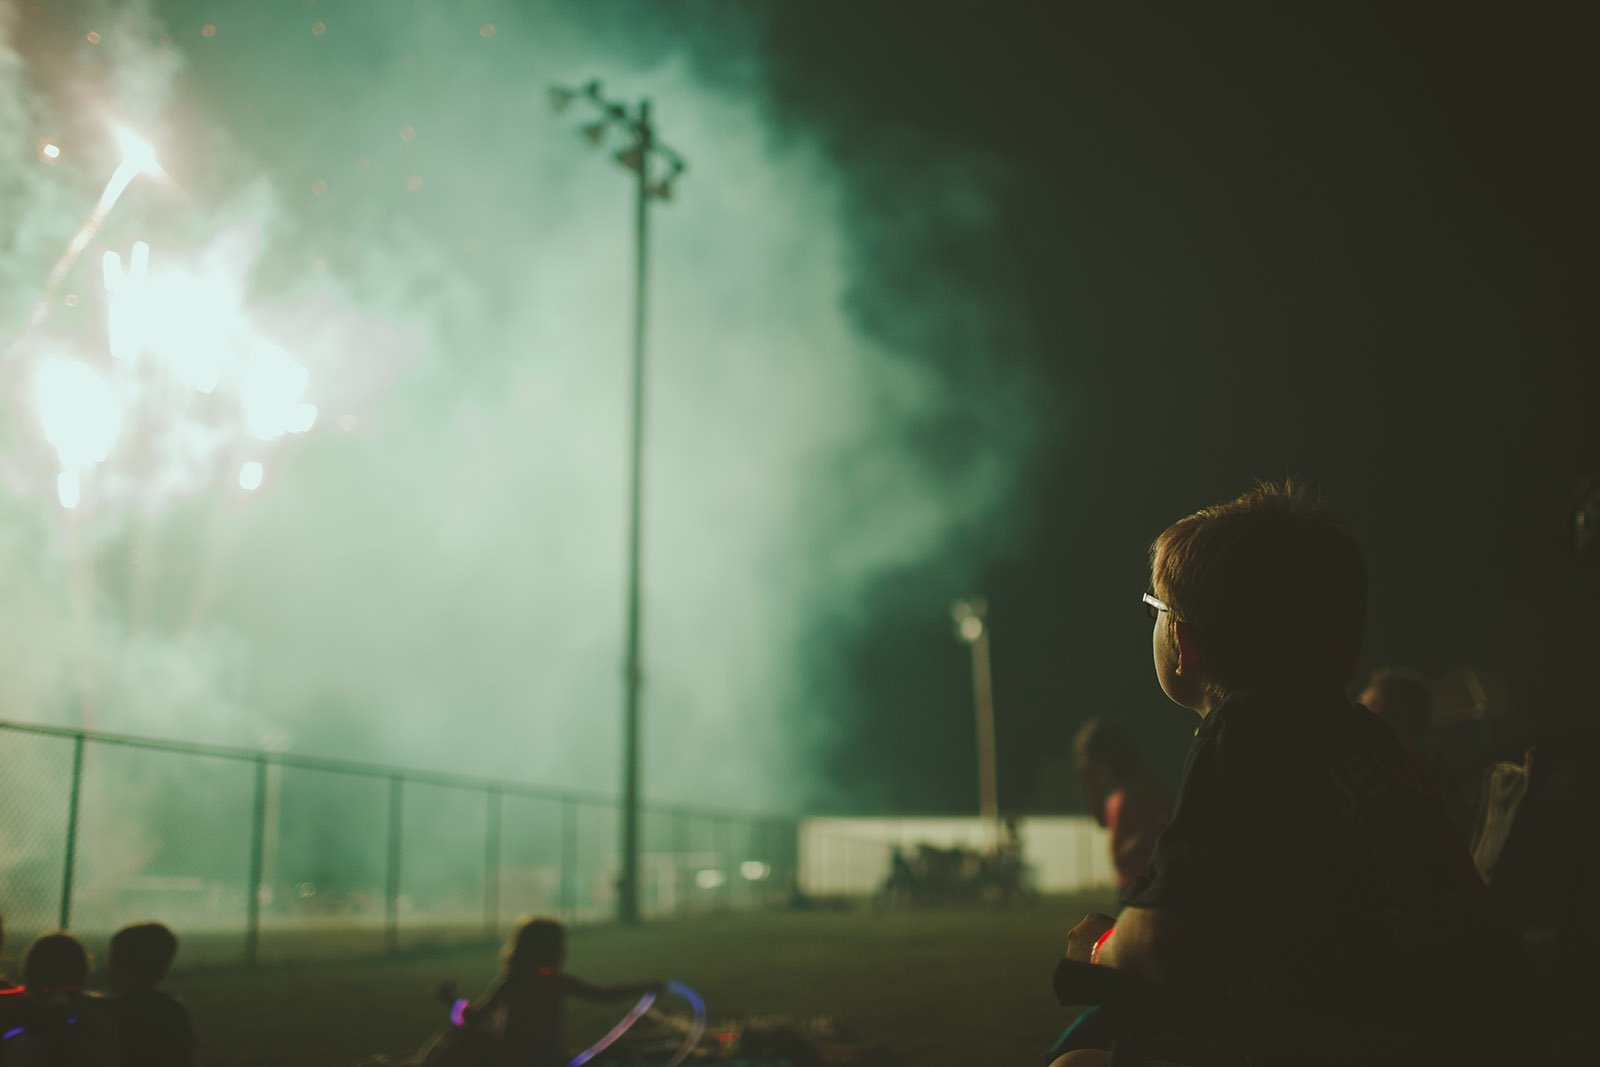 If you ask me, it's one of the most exciting holidays to photograph. When it comes to photographing the fireworks themselves, you need to be prepared. Here's how.